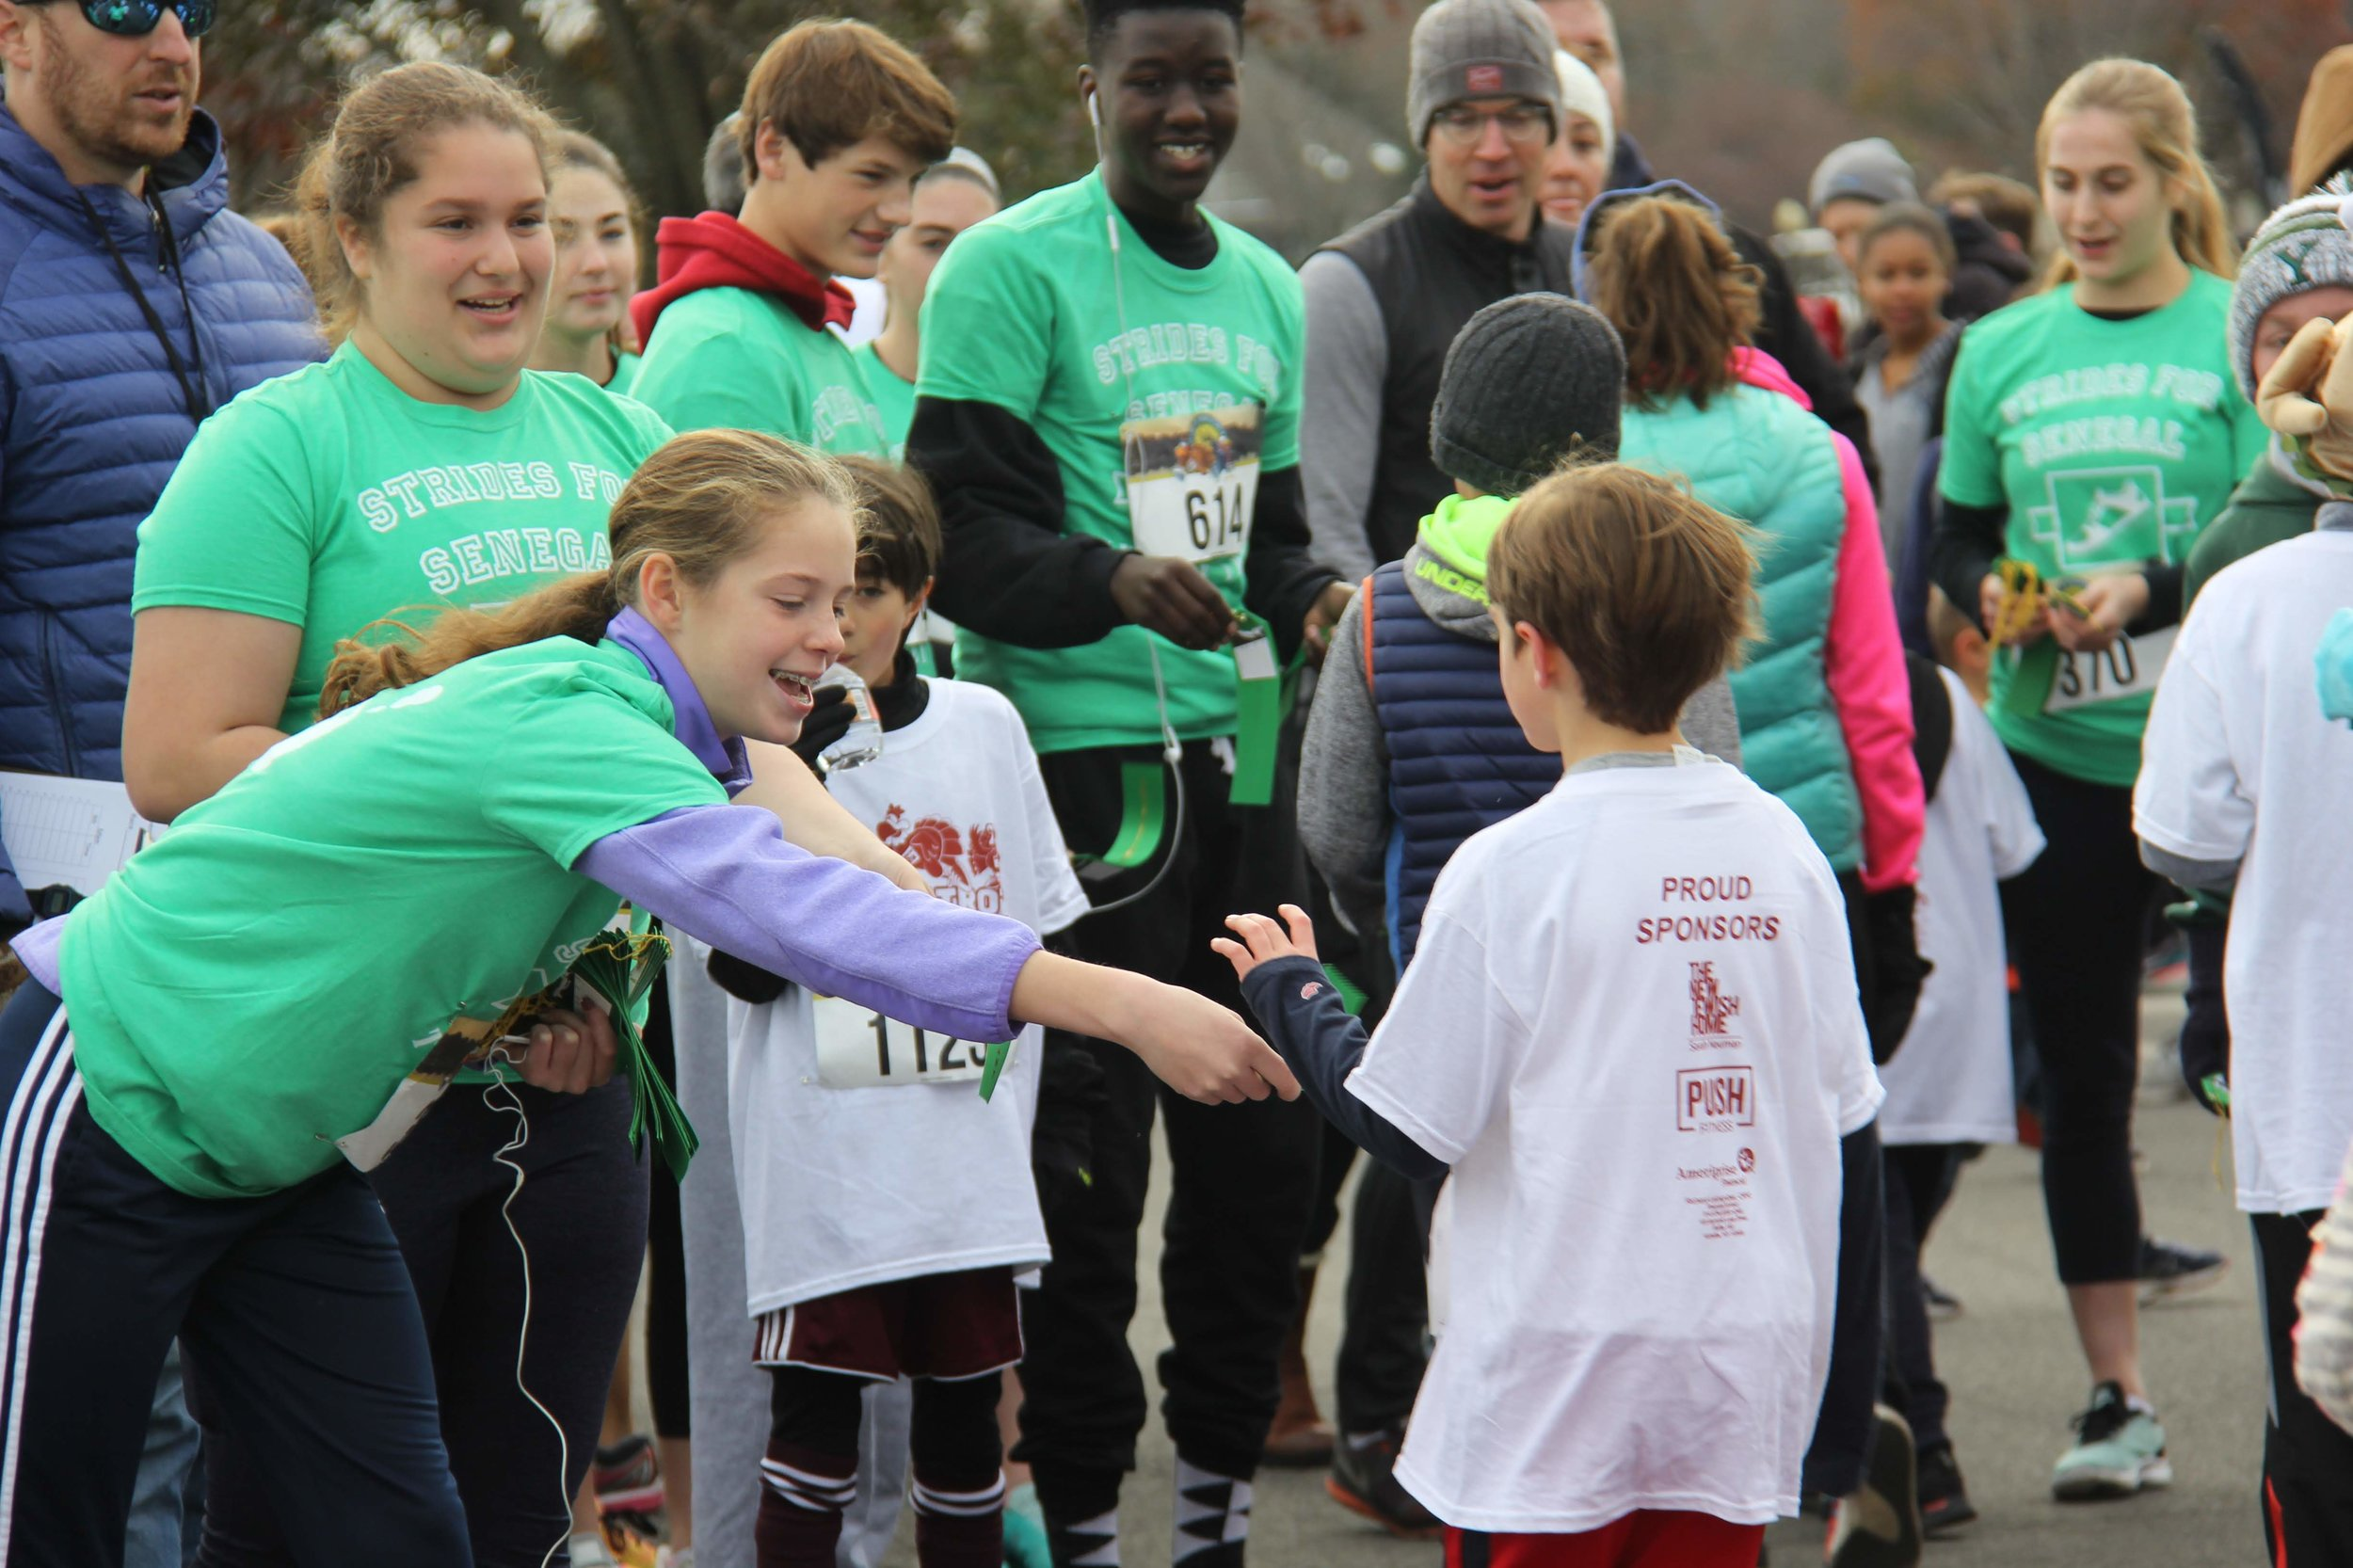 Partnering with the Village of Mamaroneck for a 5k -